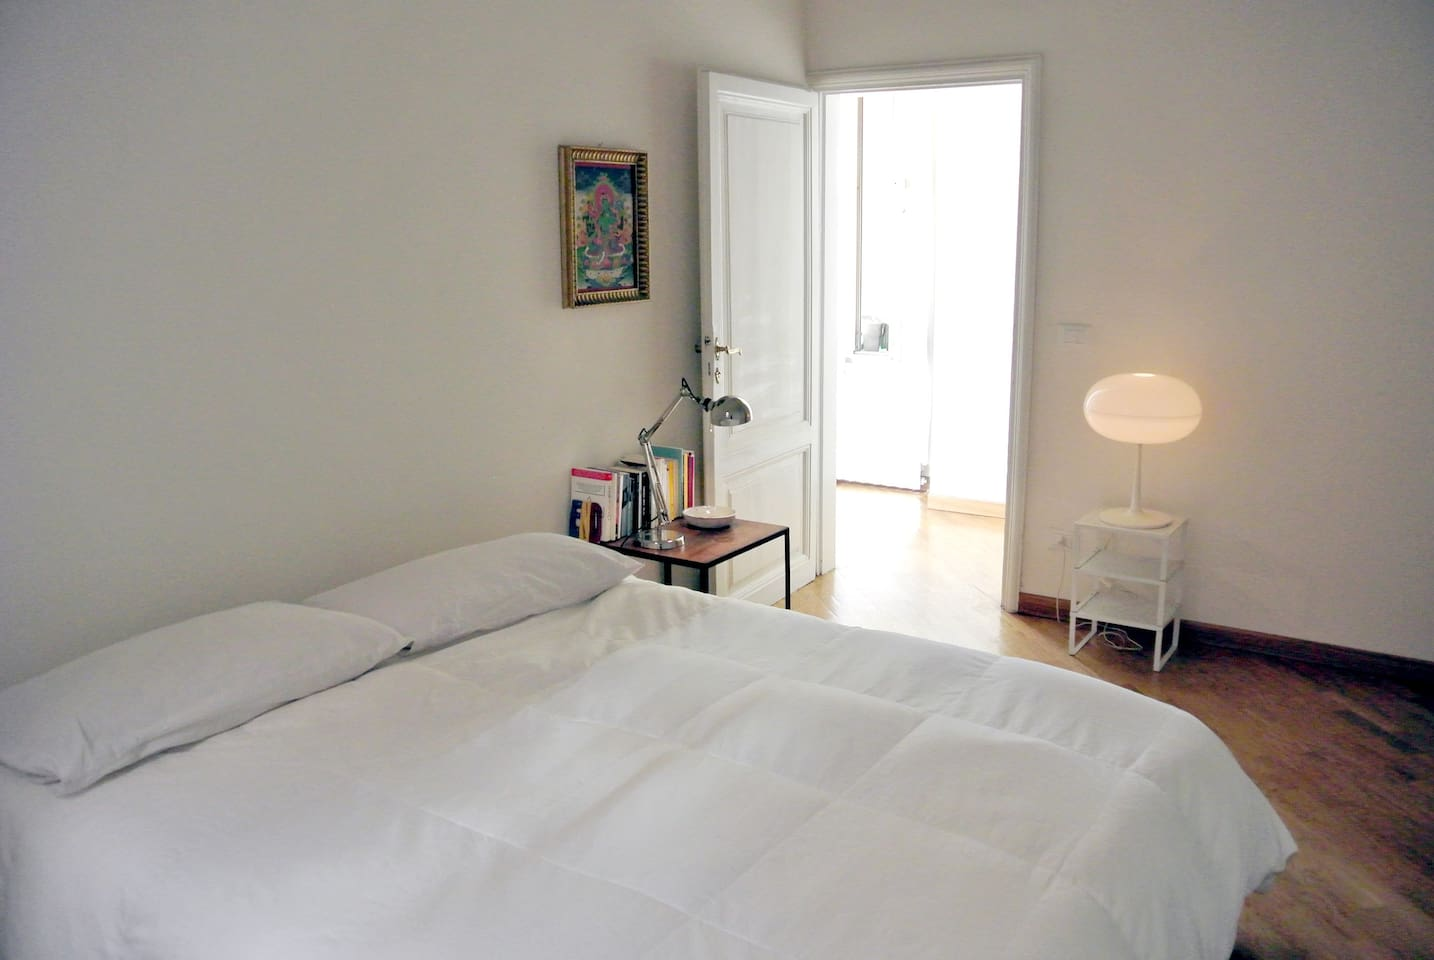 Charming apartment in the heart of Trastevere - bedroom